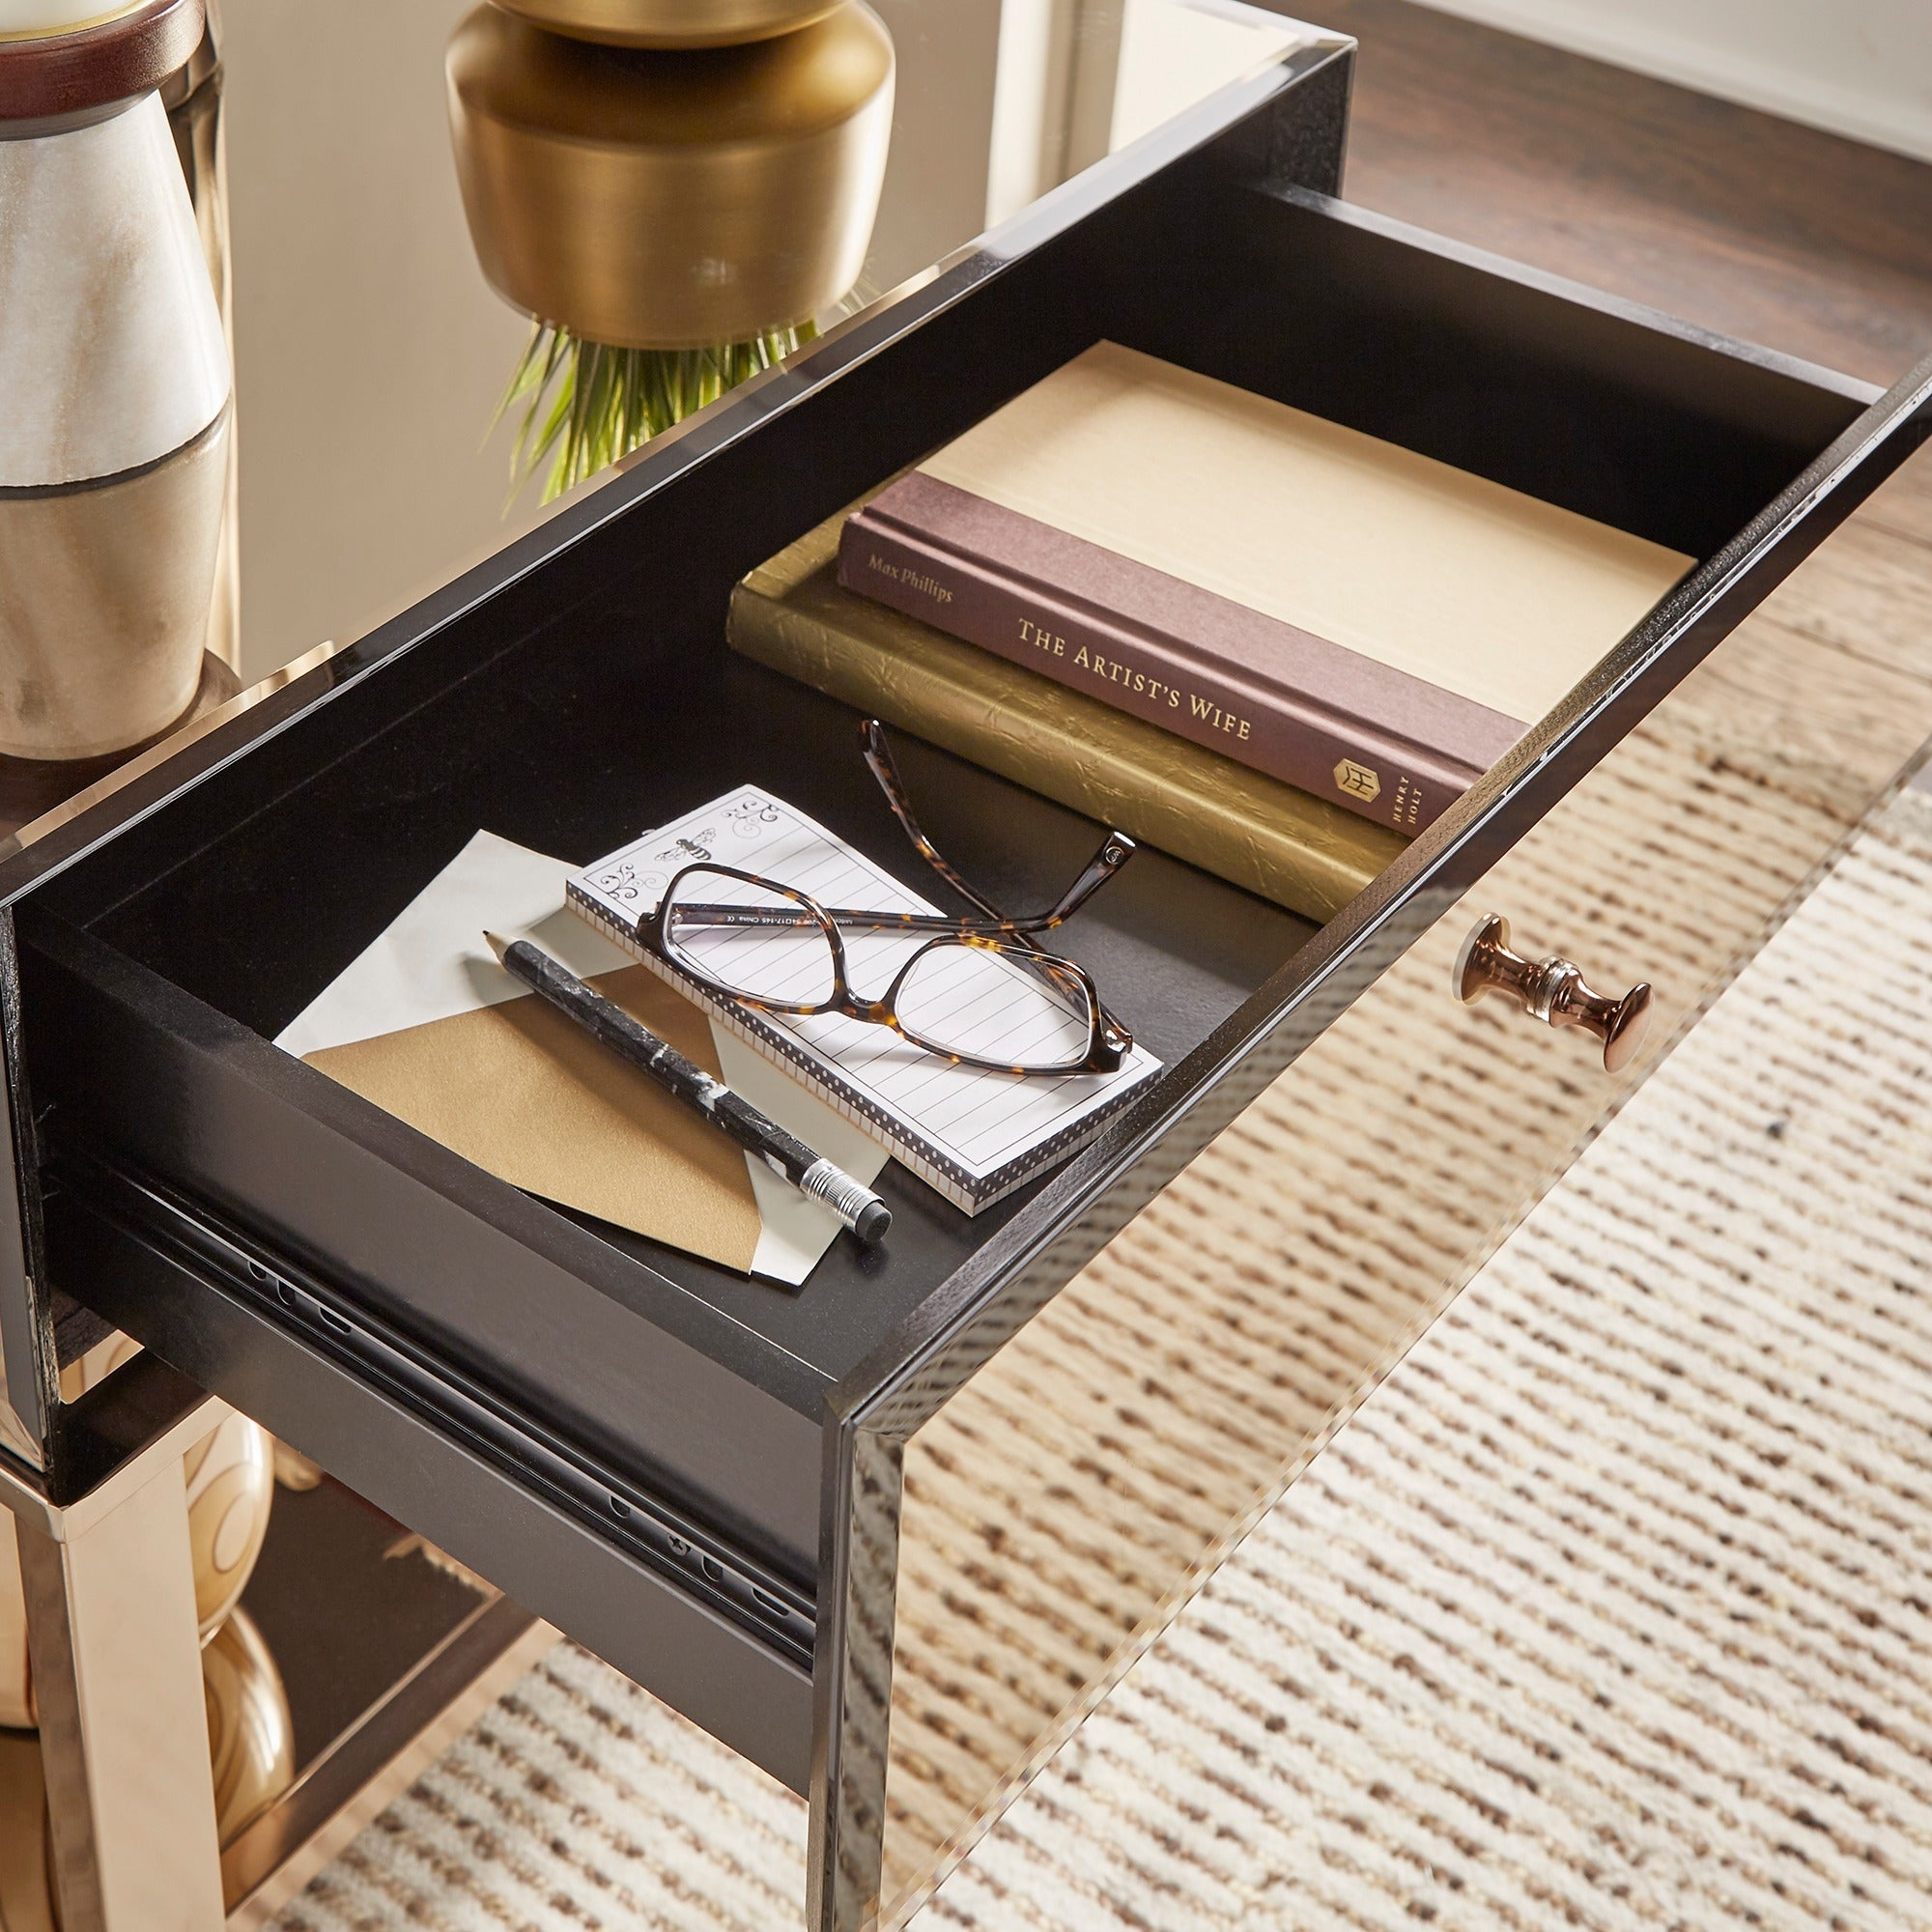 Akiko Mirrored 1 Drawer End Table by iNSPIRE Q Bold Free